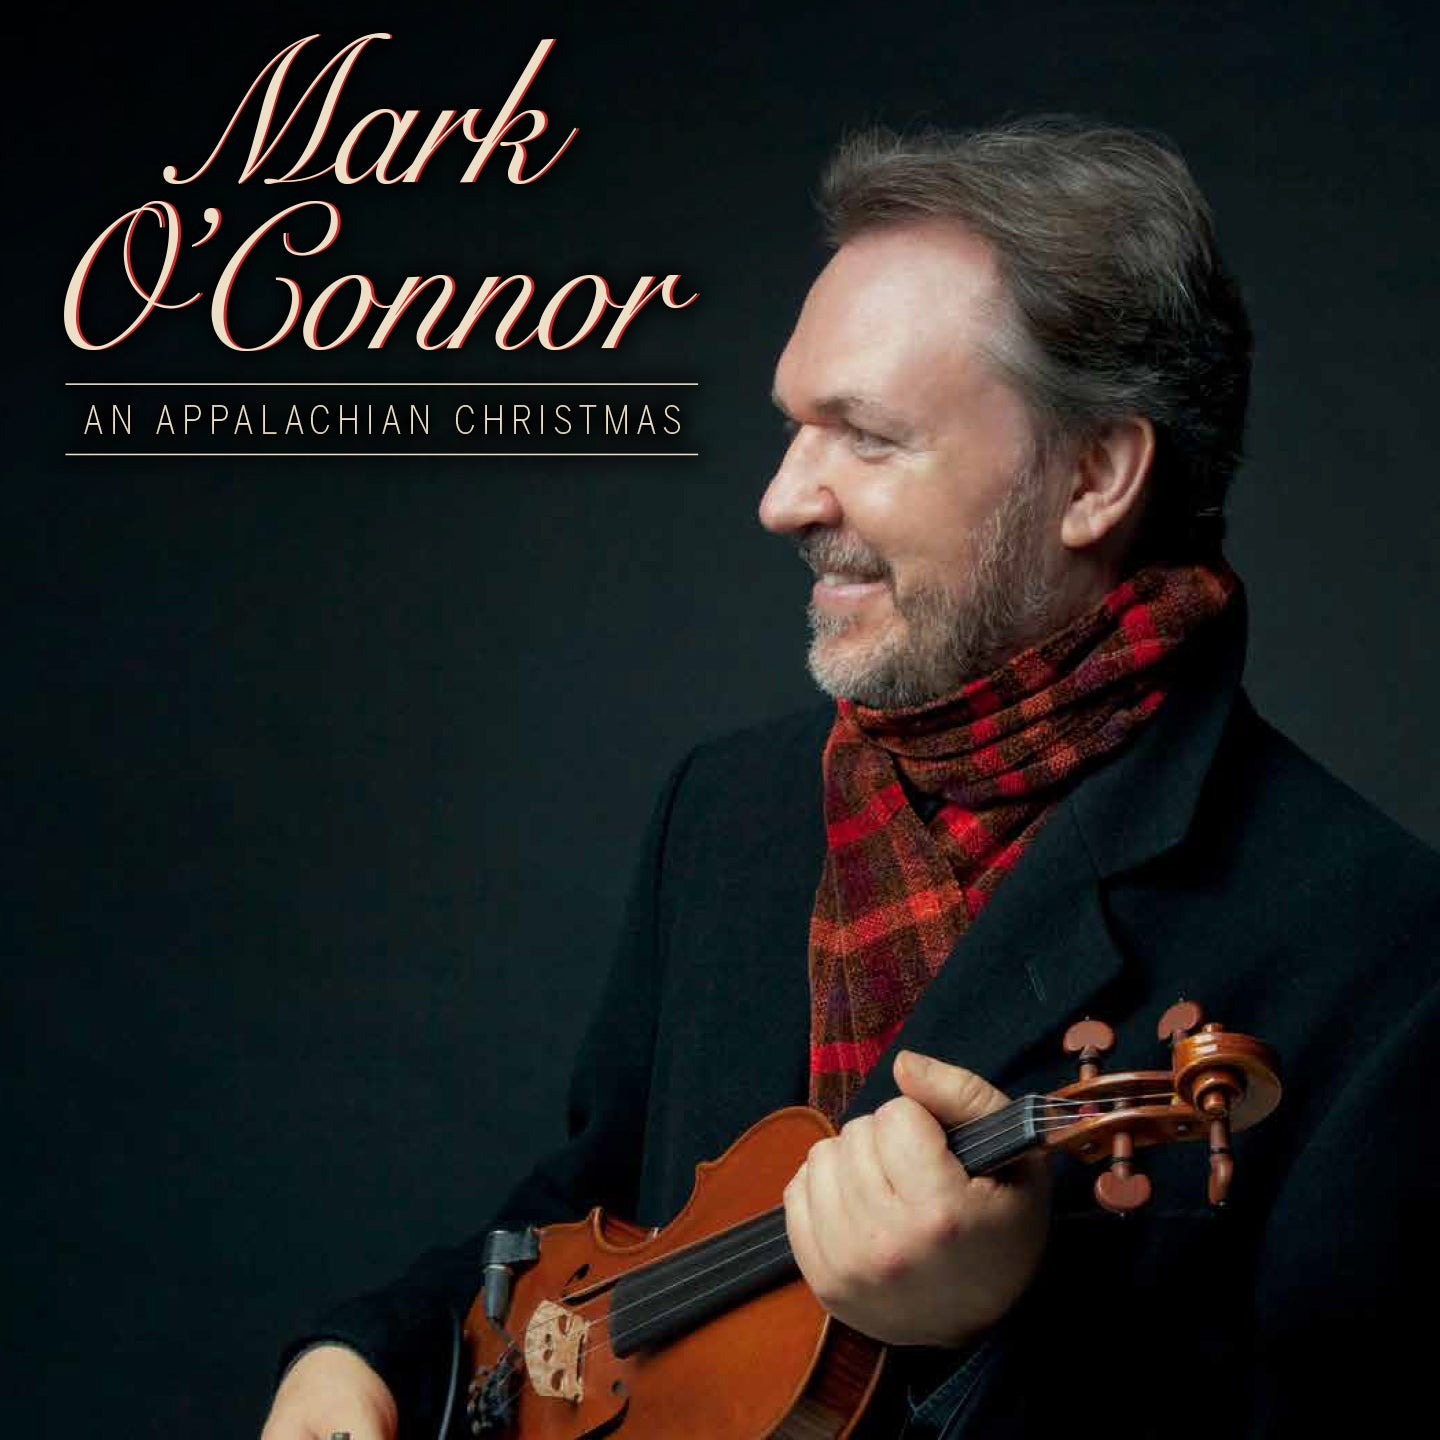 Mark O'Connor's An Appalachian Christmas